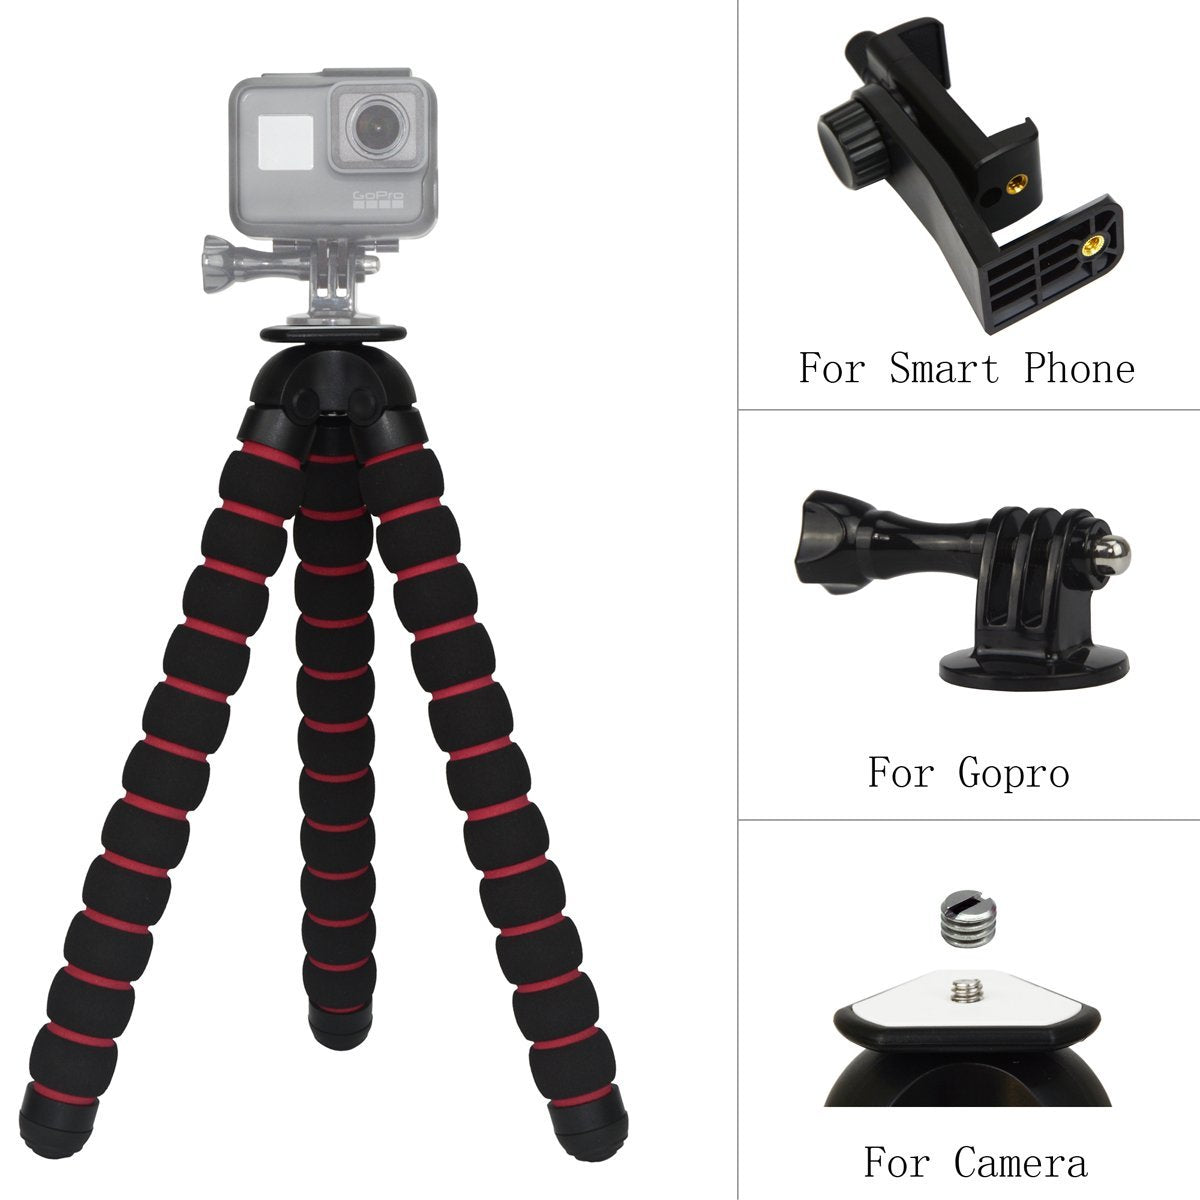 CRX Heavy Duty Gopro Tripod - Black & Red (Size: S) | Monthly Madness